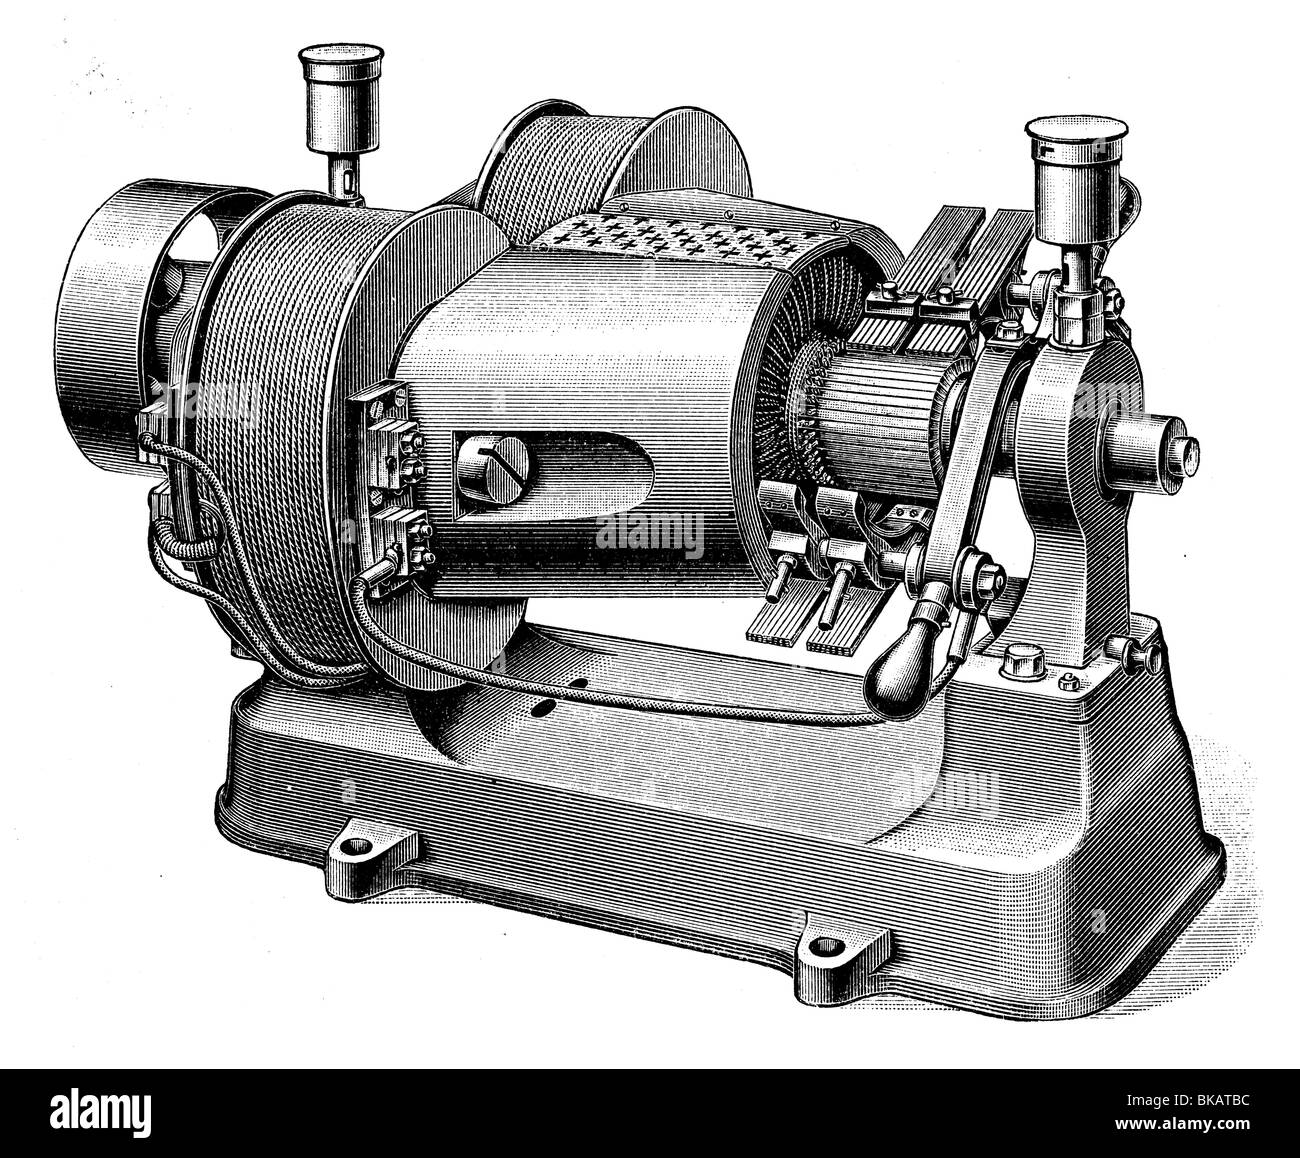 Dynamo Machine Stock Photos Images Alamy Schematic Diagram Of Disk